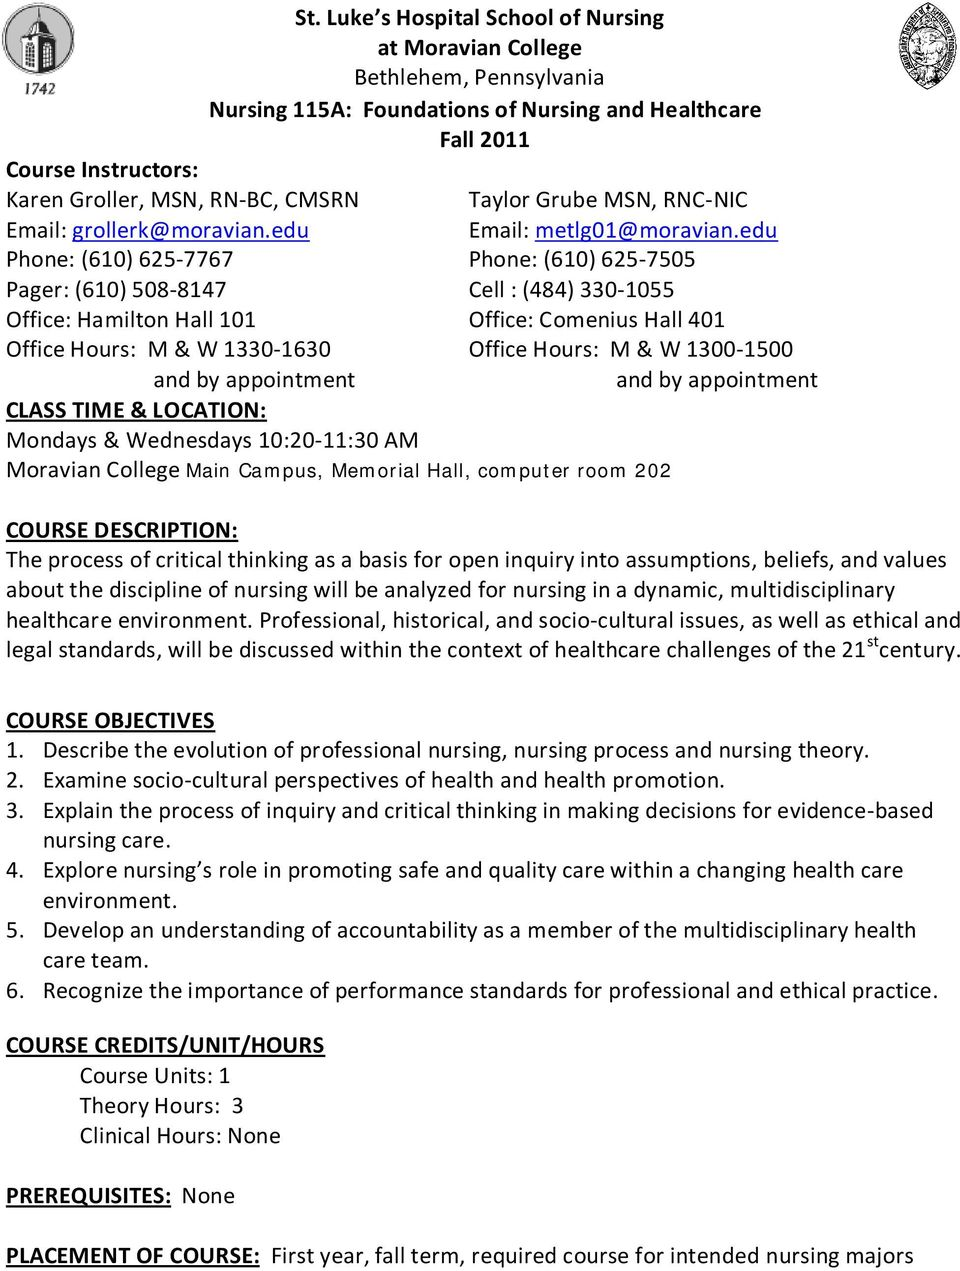 Luke s Hospital School of Nursing at Moravian College Bethlehem, Pennsylvania Nursing 115A: Foundations of Nursing and Healthcare Fall 2011 Taylor Grube MSN, RNC-NIC Email: metlg01@moravian.